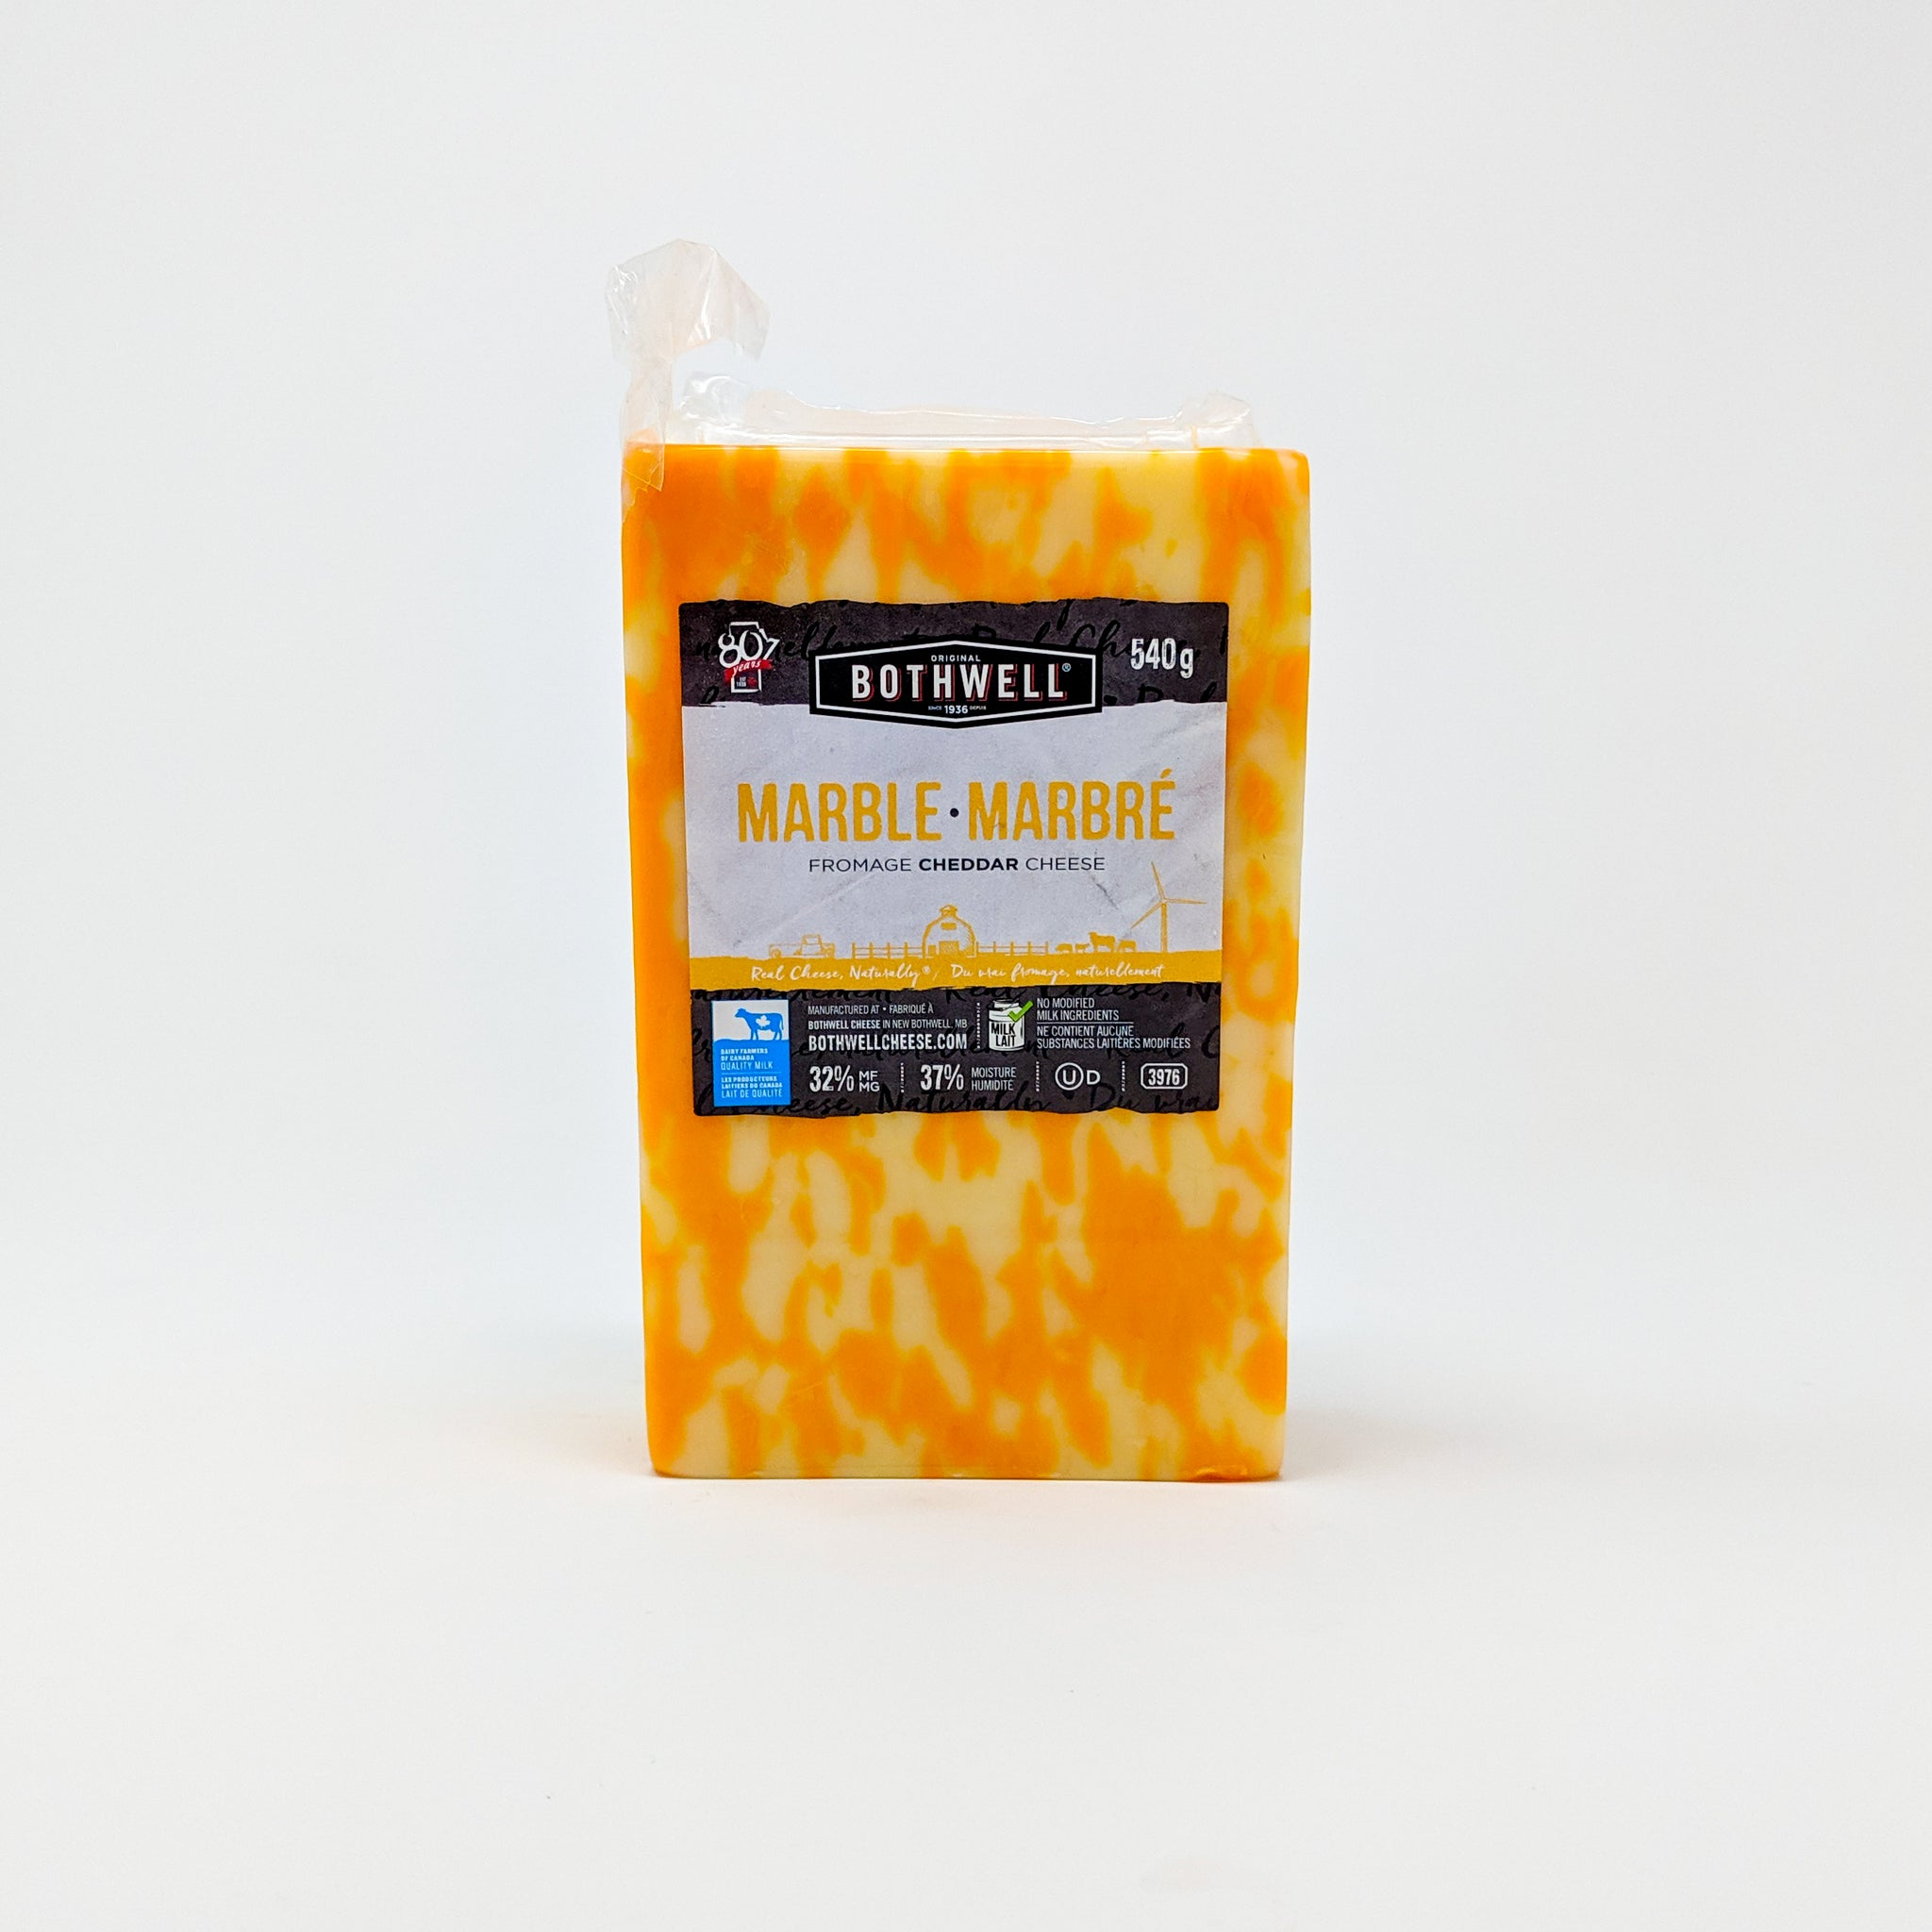 Marble Cheese 540g - Bothwell Cheese